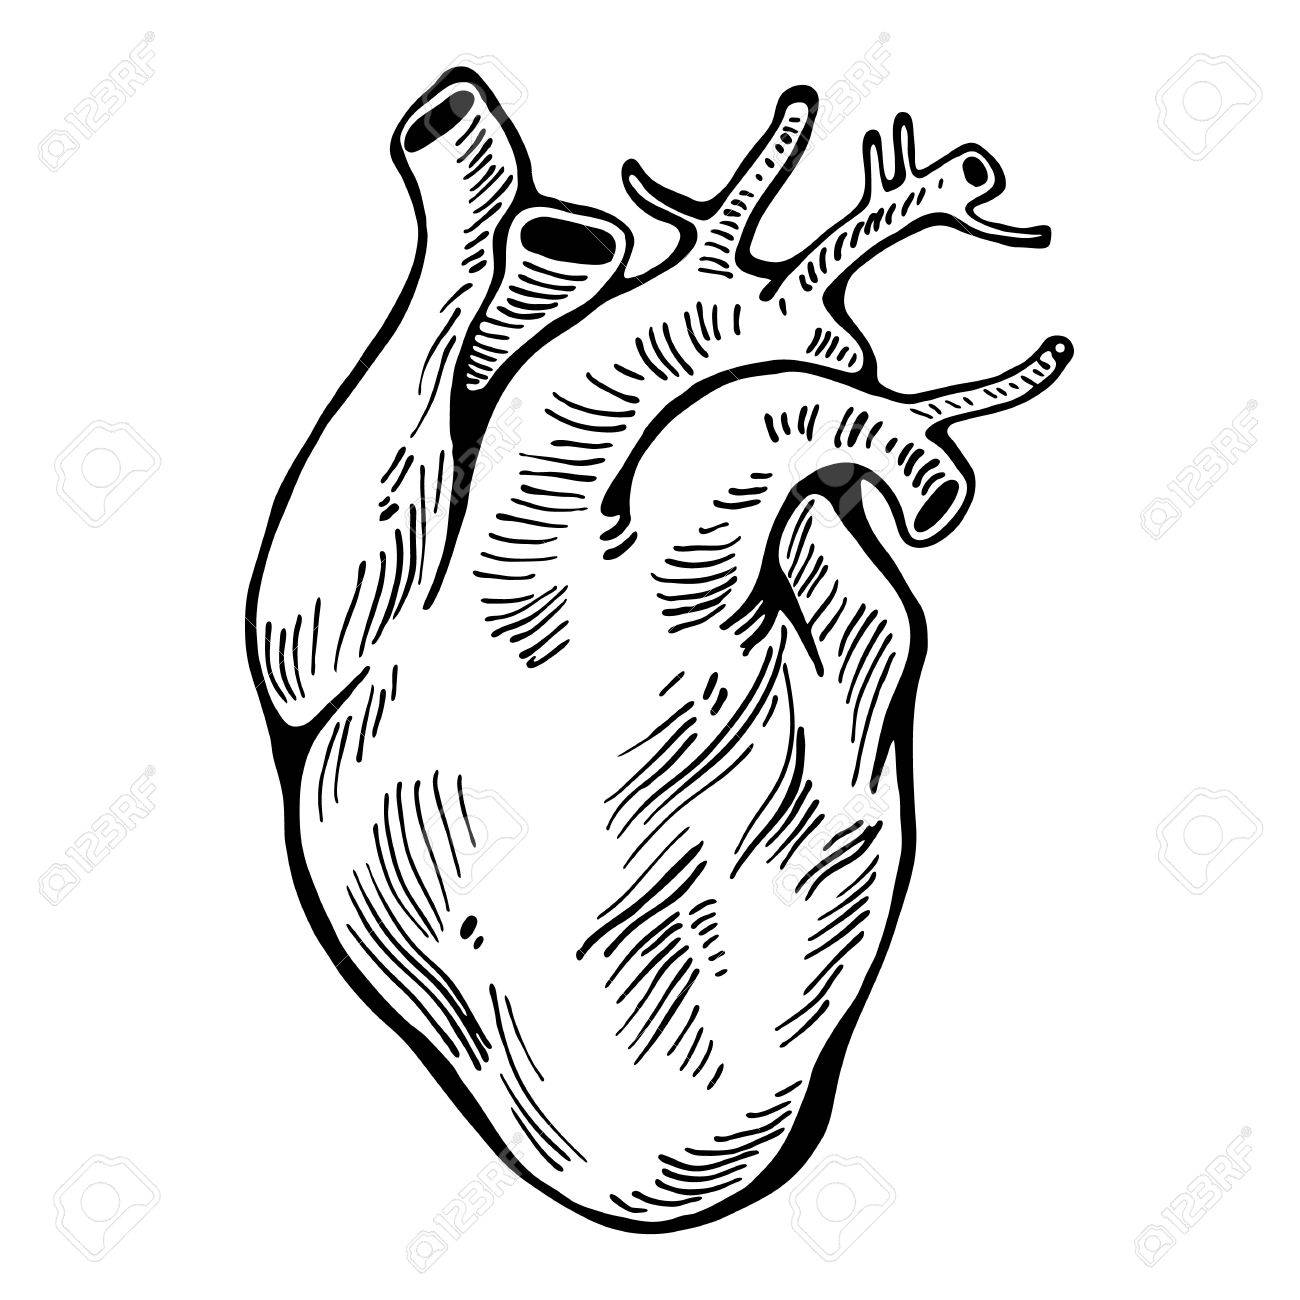 real human heart drawing at getdrawings com